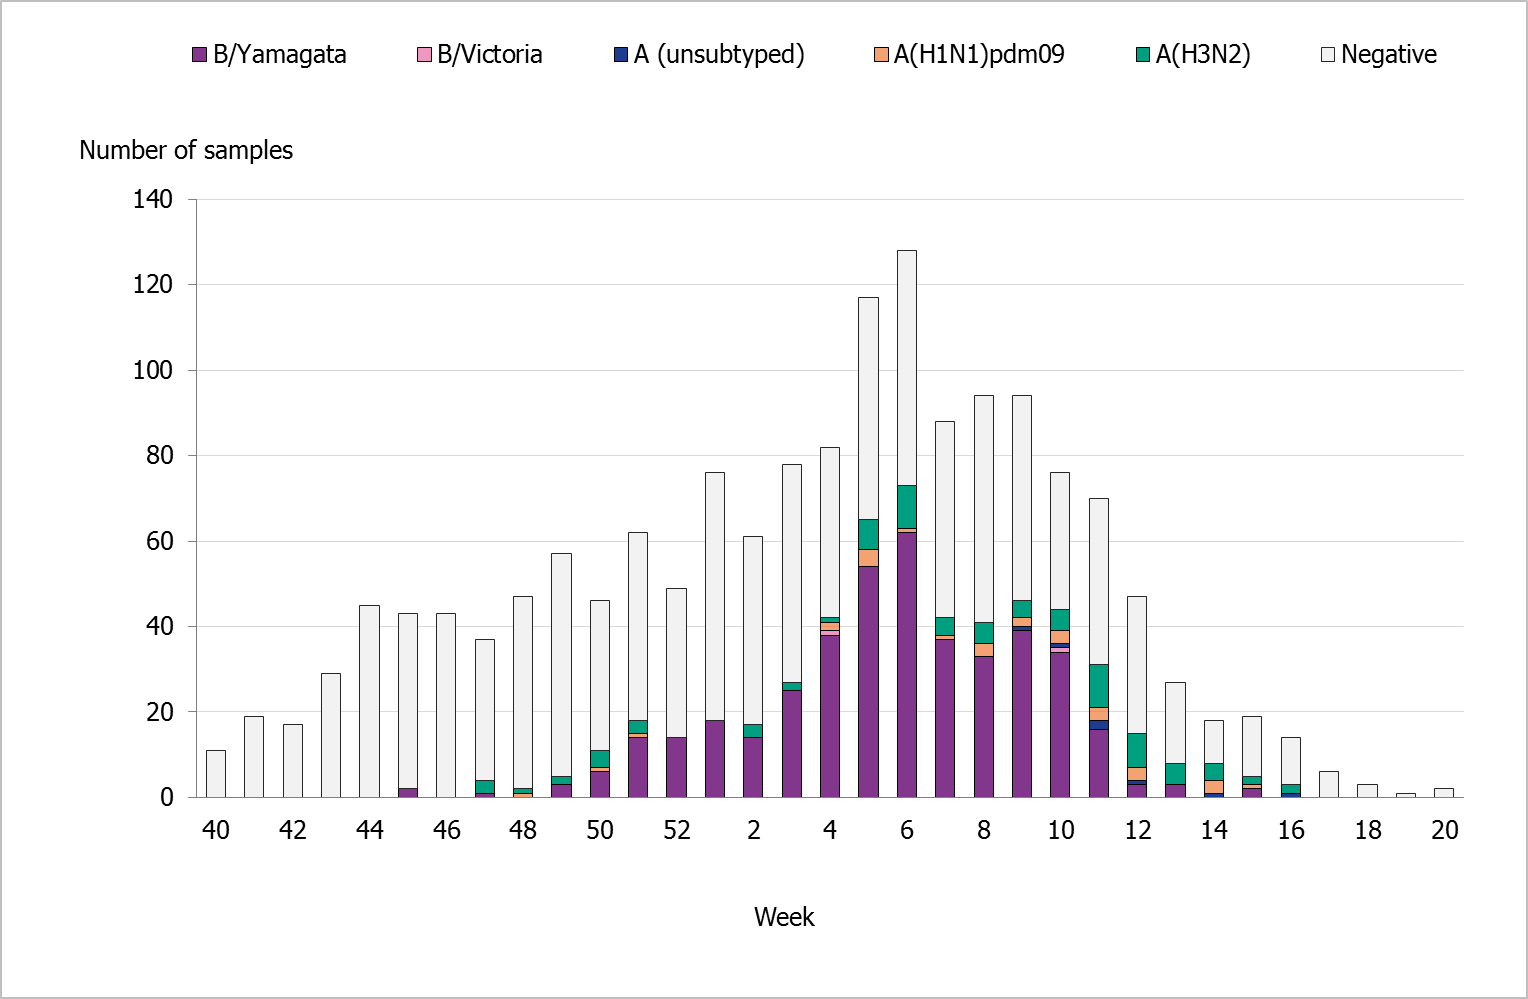 Number of sentinel samples submitted each week and the number of samples by subtype/lineage. B-Yamagata is by far the most prominent.